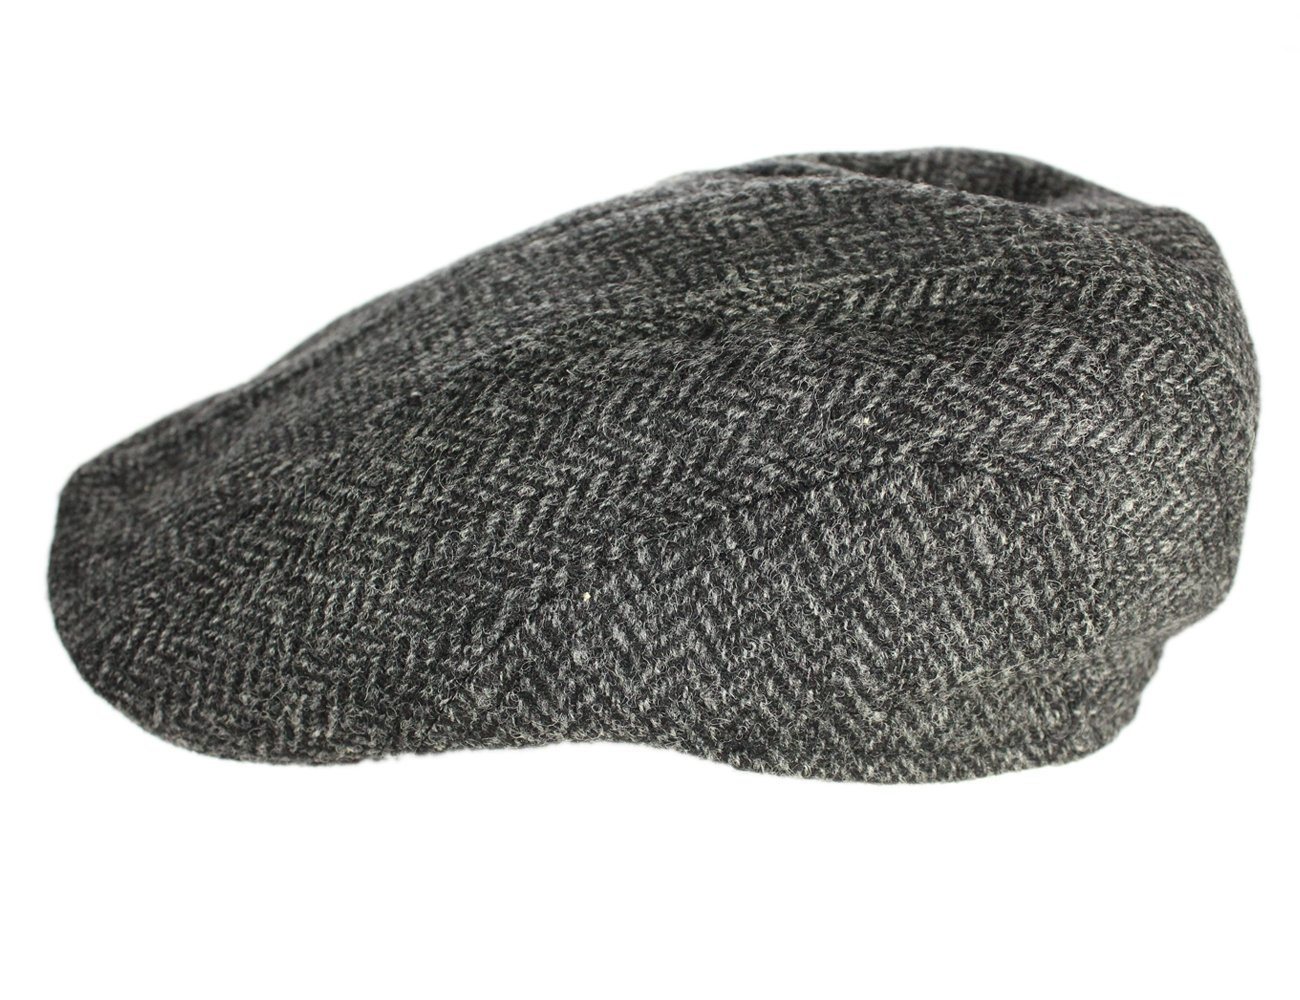 e92d7946ad5 Touring Cap Irish Made Tweed Structured Duckbill Fit Grey Made in Ireland  John Hanly   Co. Large Apparel